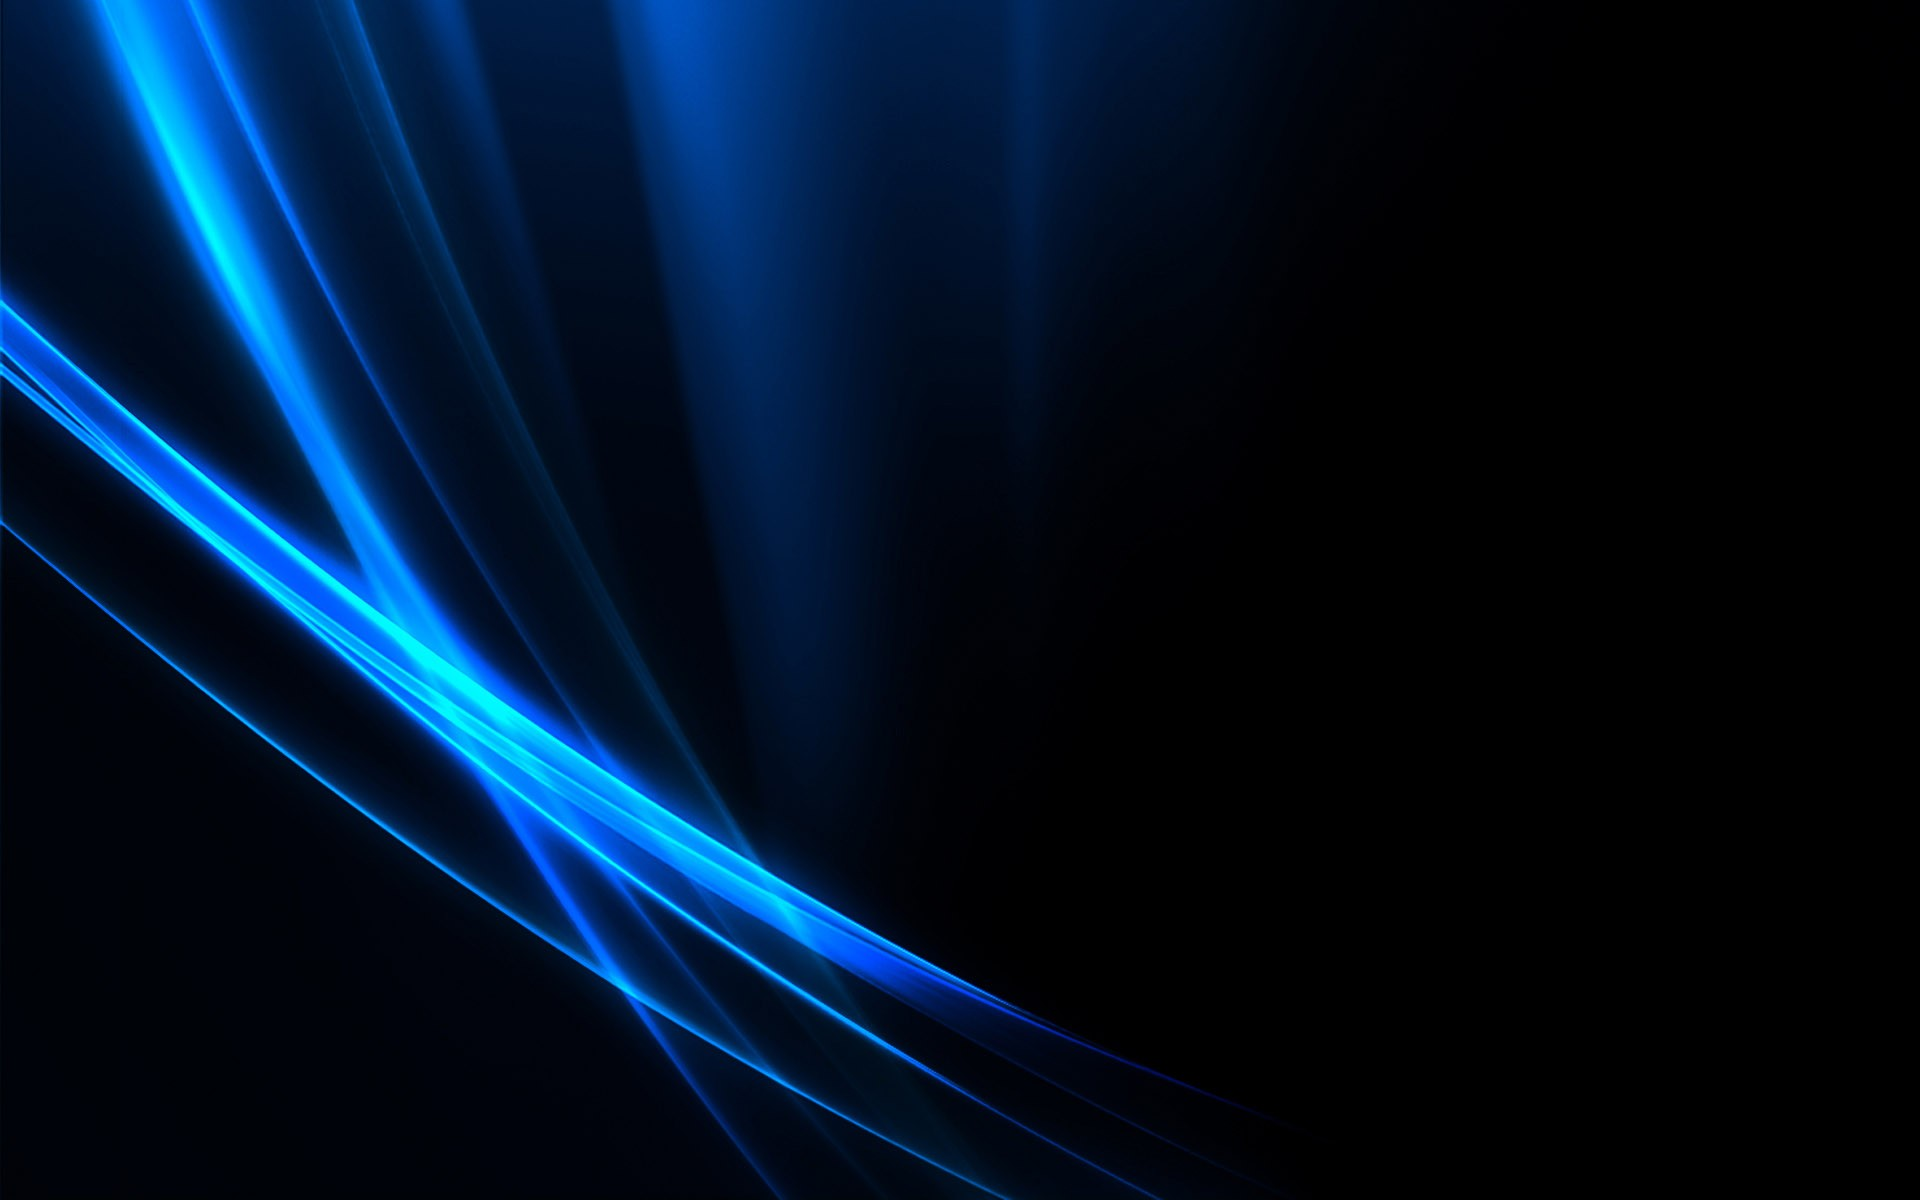 Glowing Blue Scratches wallpaper